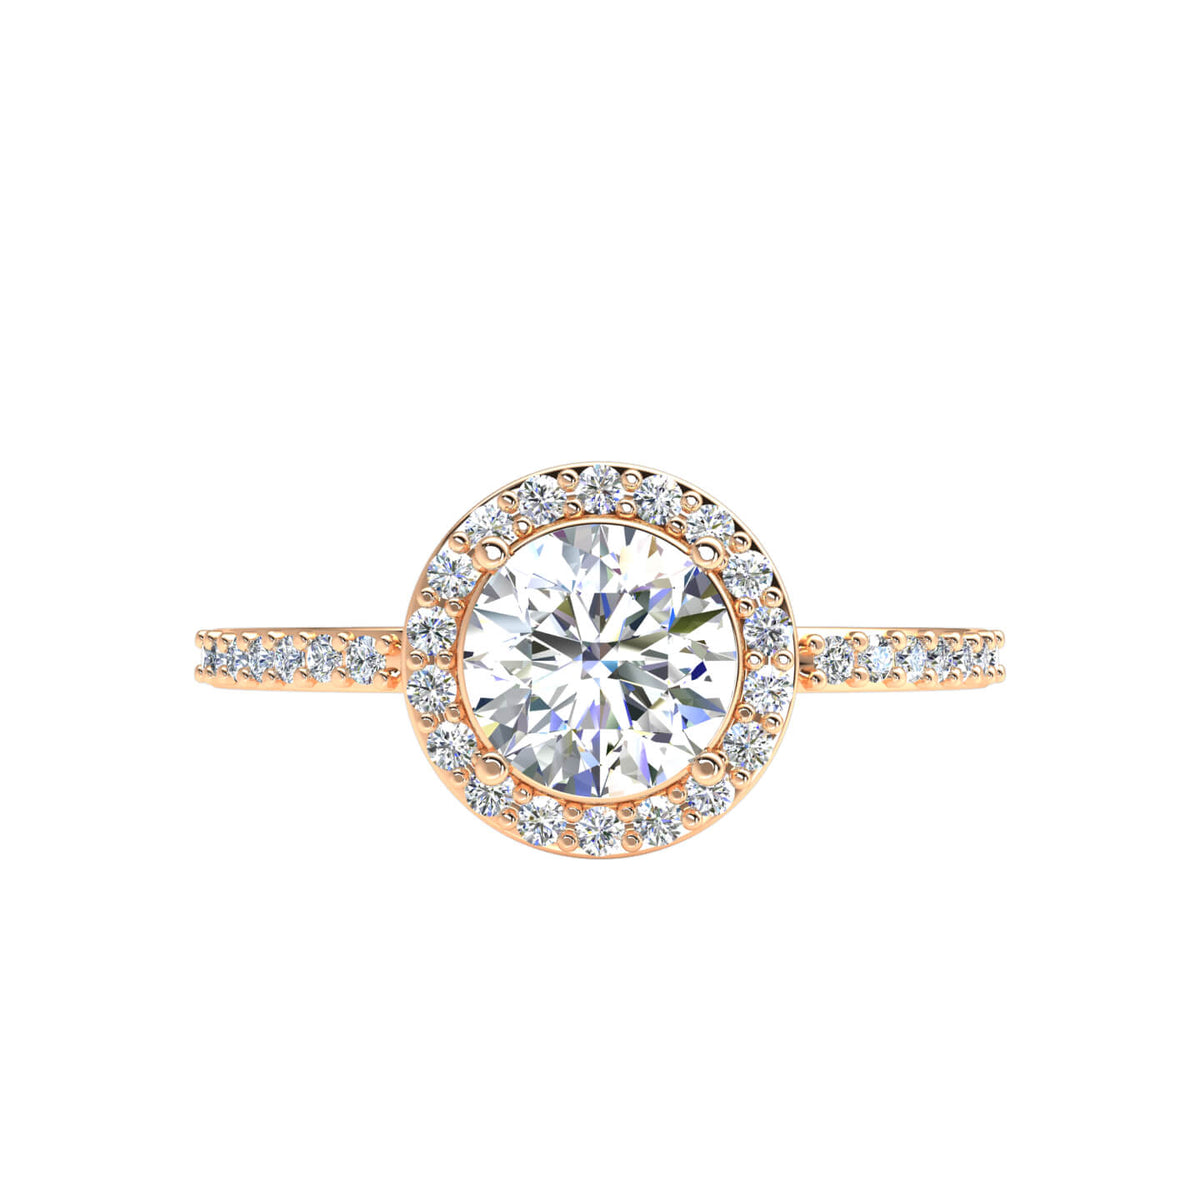 1.10 Ct Accents Halo Women's Solitaire Round FG VS Diamond Engagement Ring 14k Gold